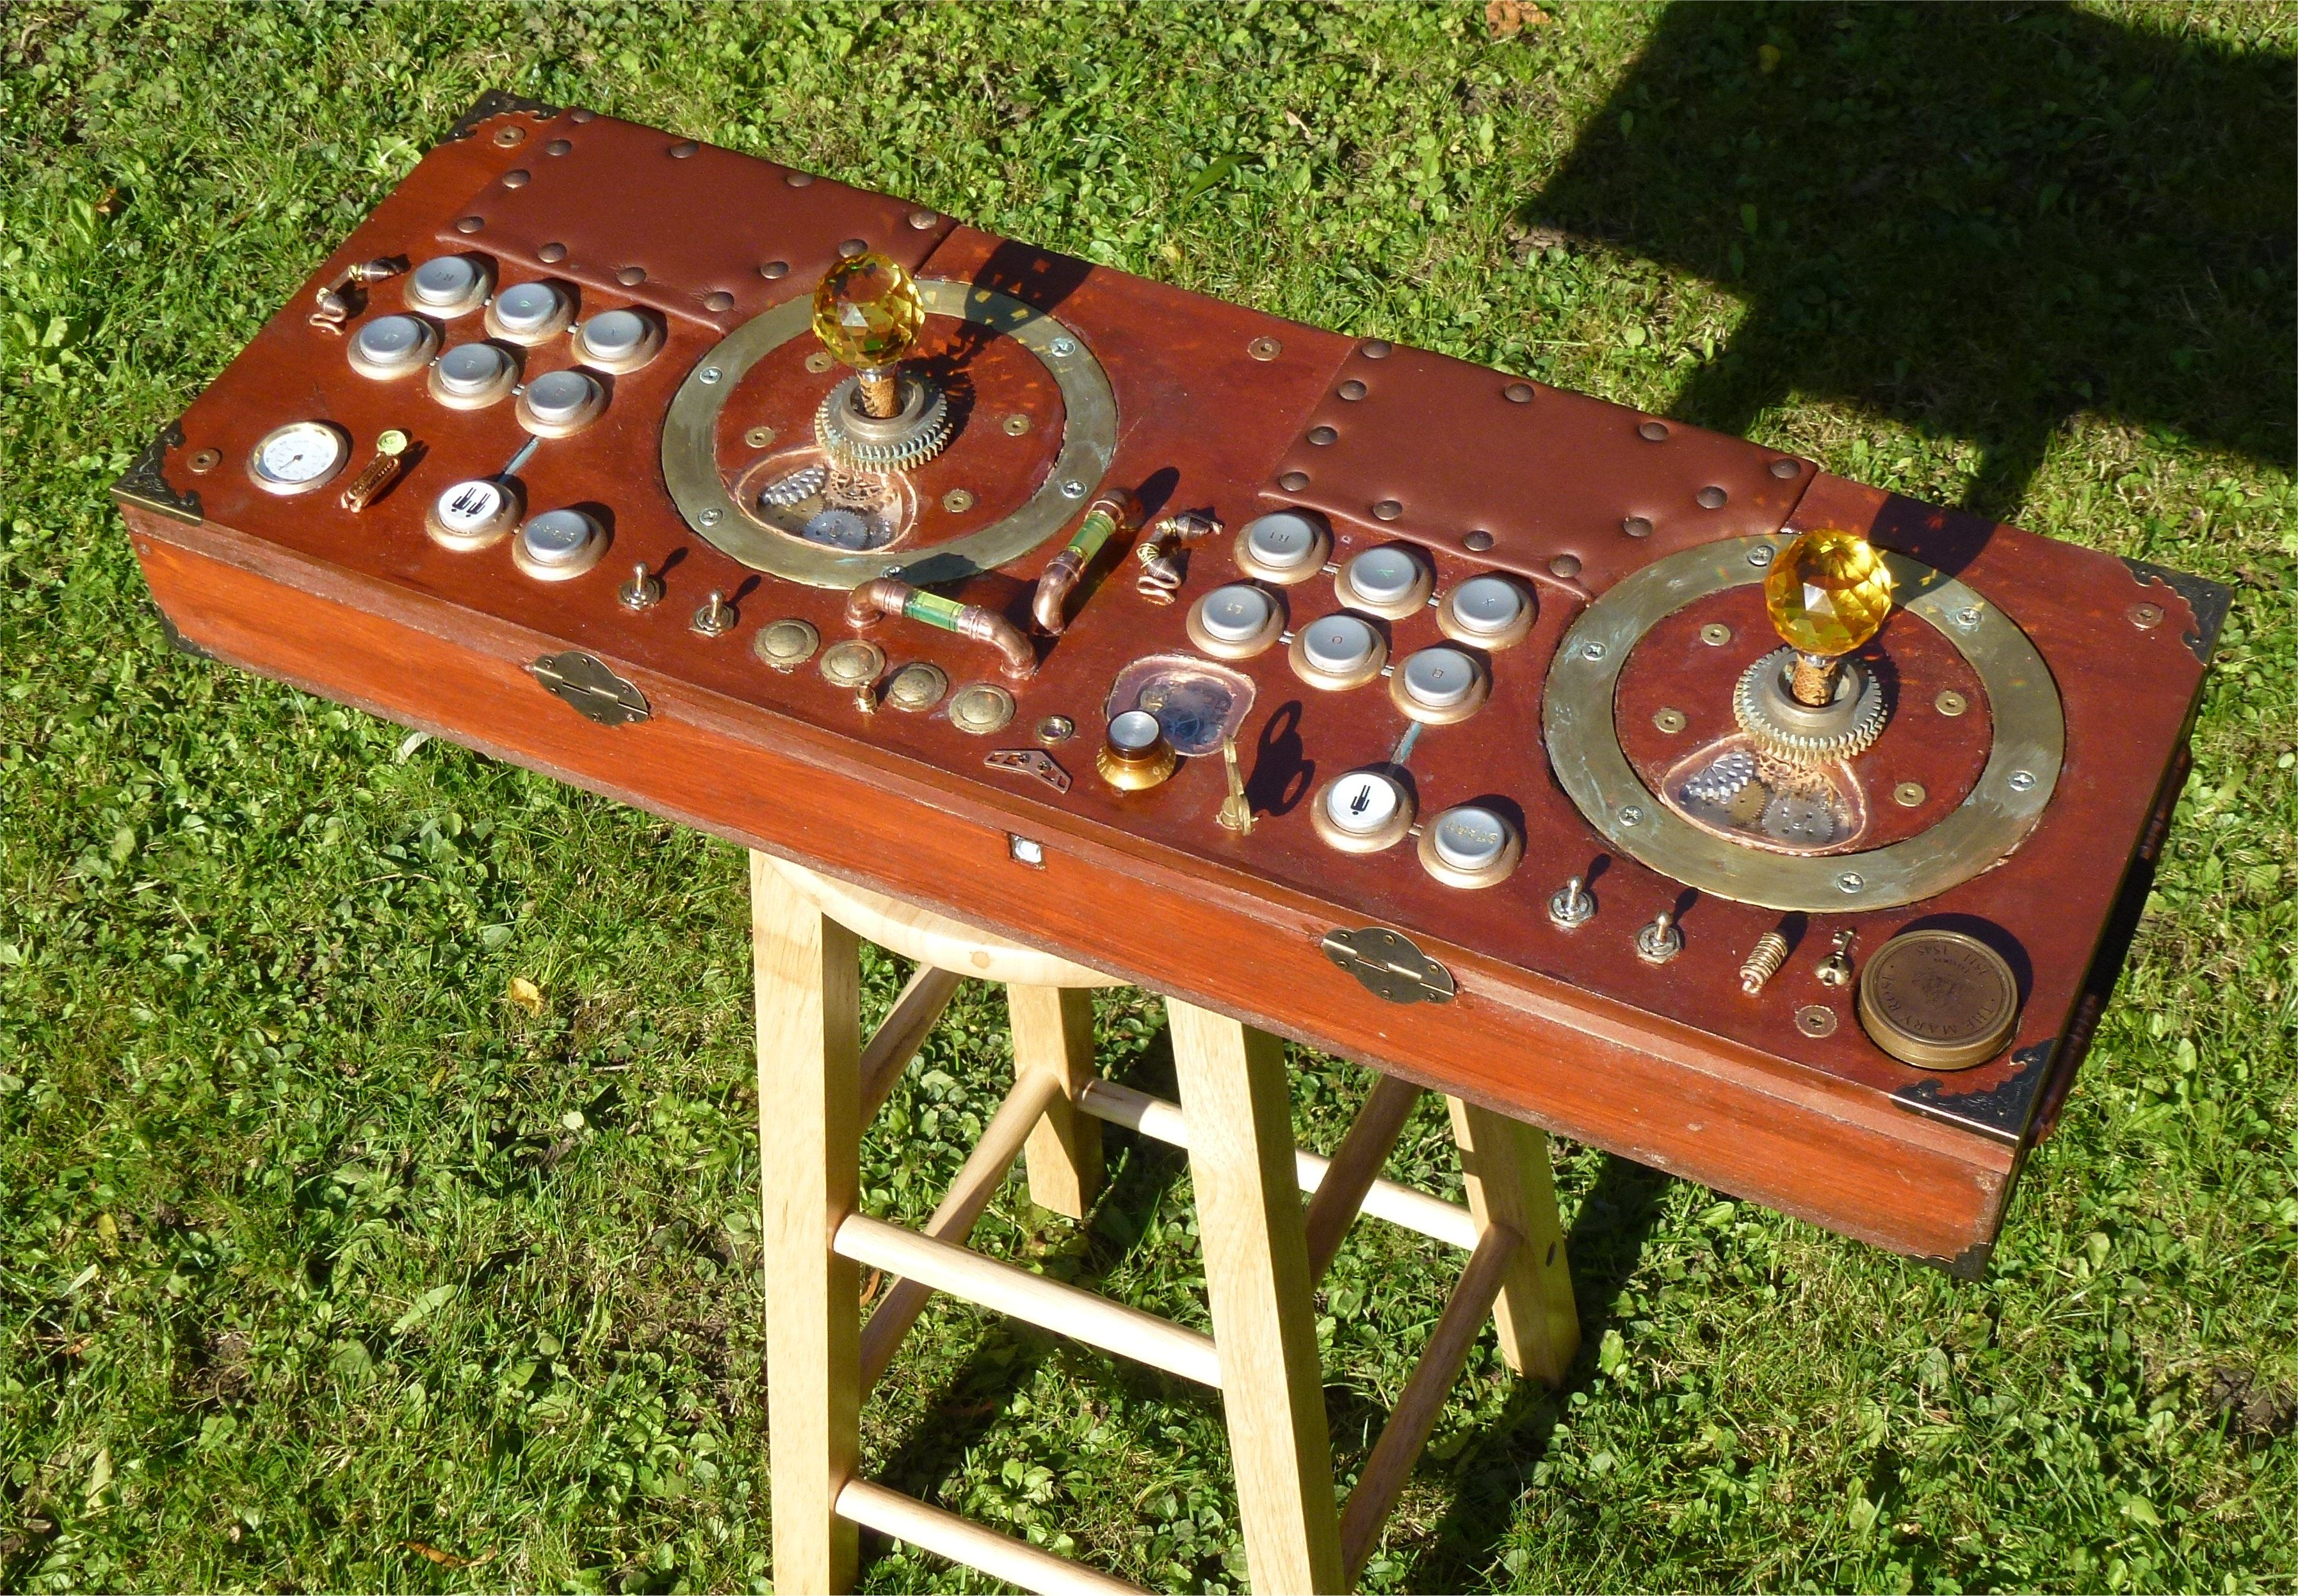 2 Player USB / PS3 Arcade Joystick - this one in a kind of Steampunk